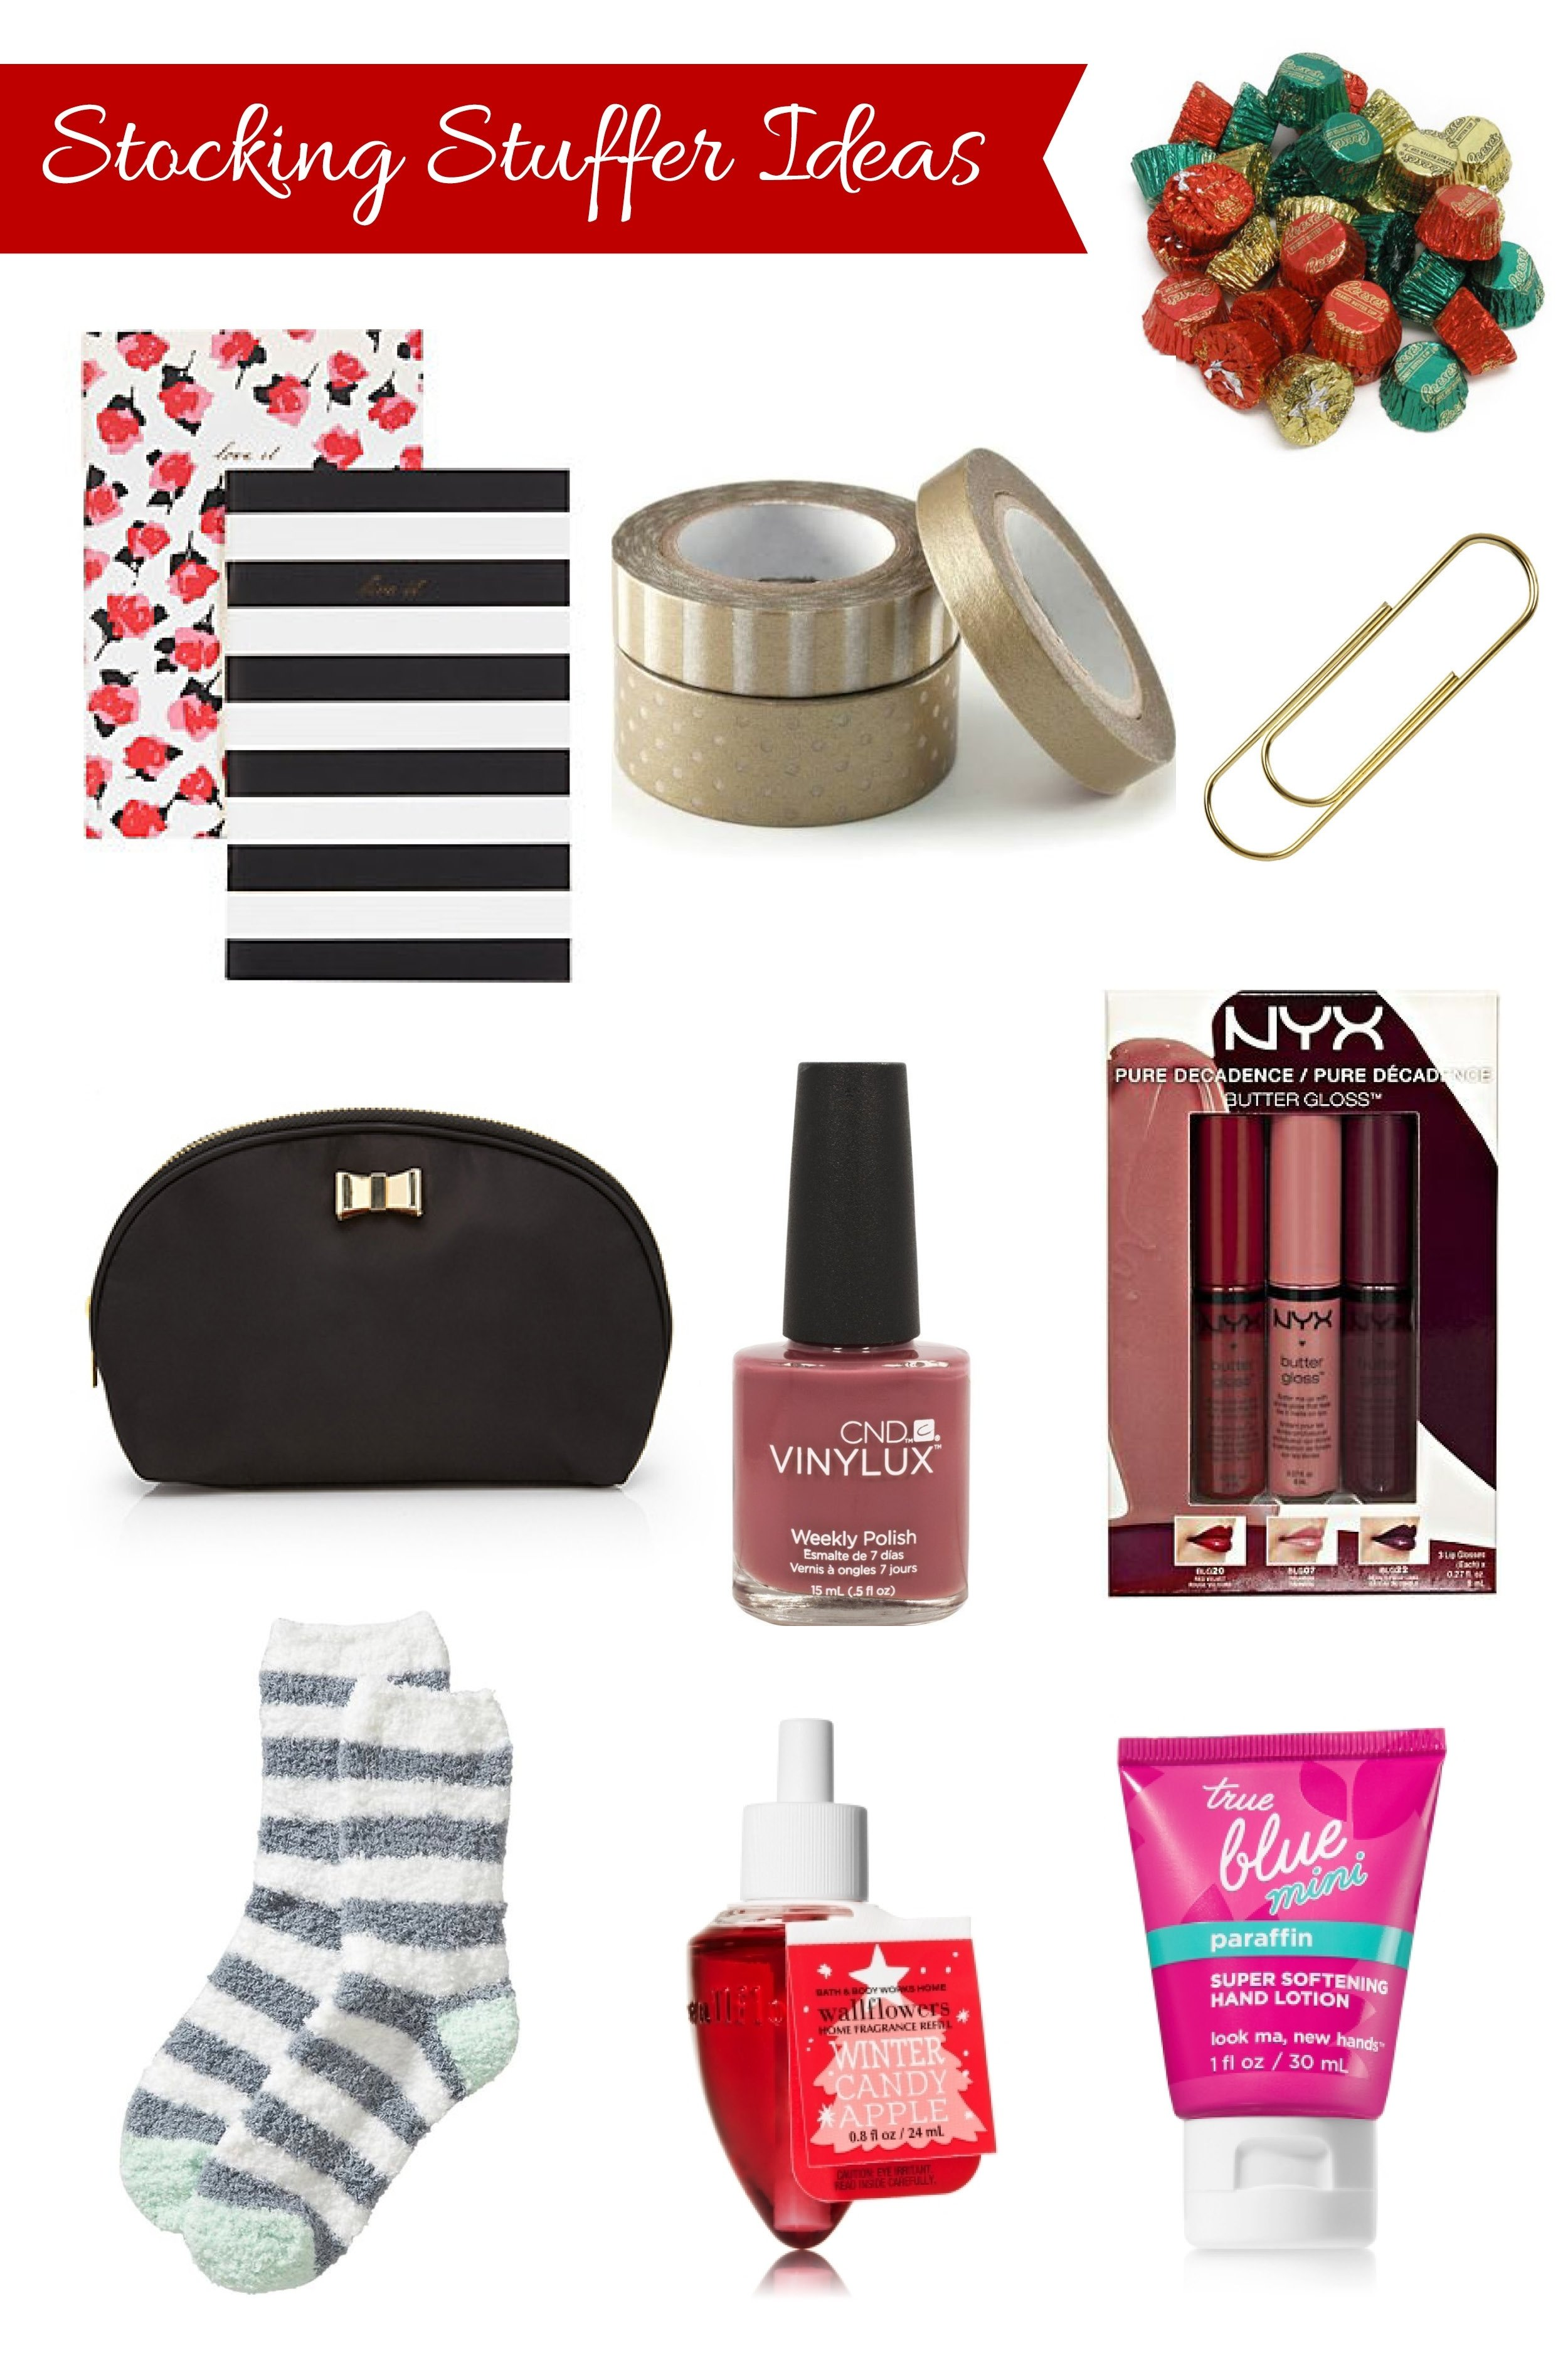 10 Lovable Stocking Stuffer Ideas For Her stocking stuffer ideas under 10 perpetually daydreaming 3 2020